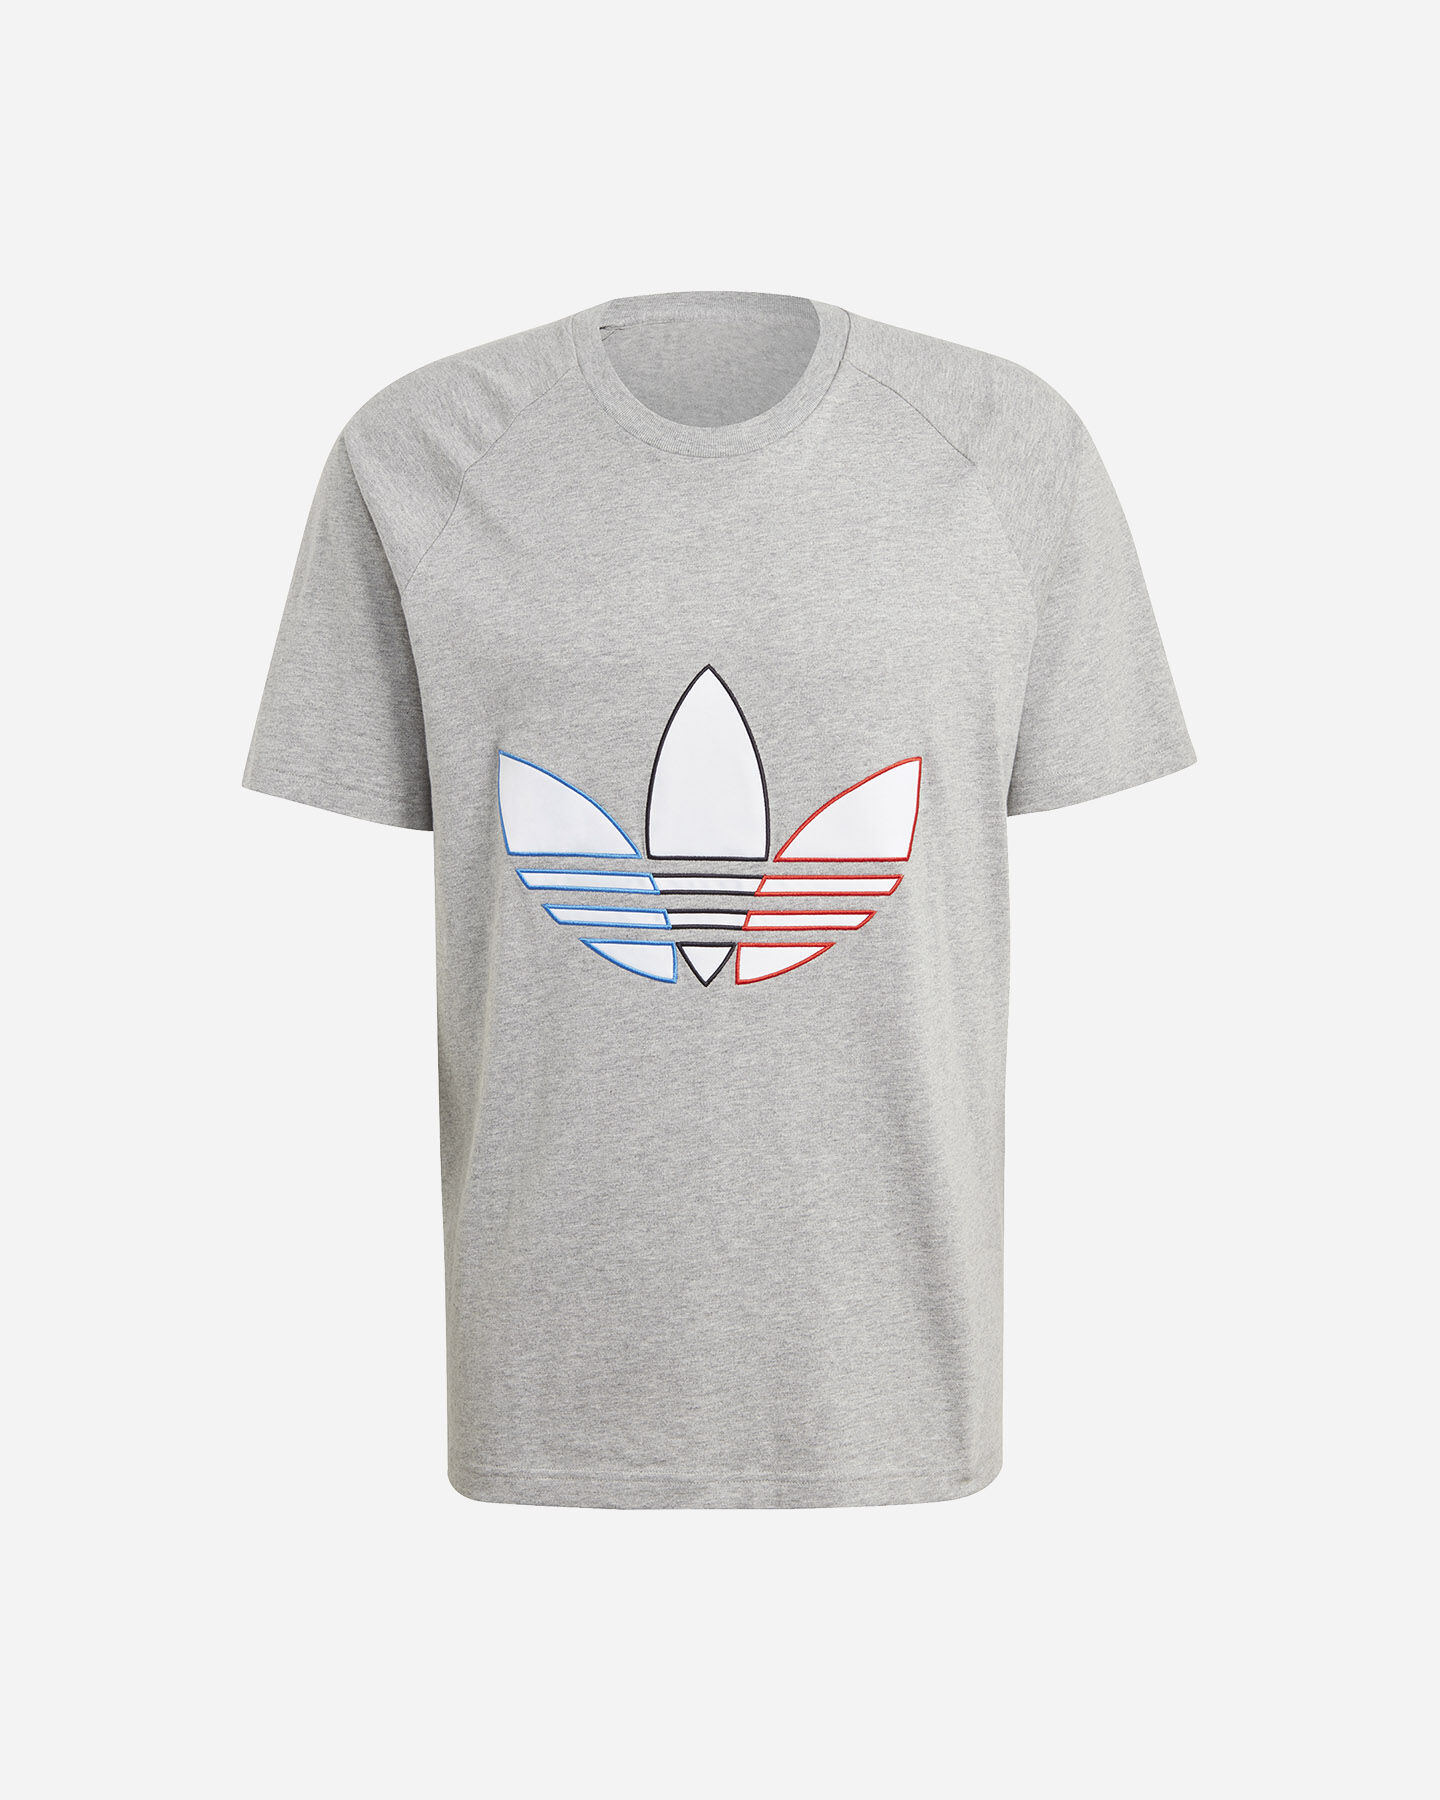 T-Shirt ADIDAS SPACE RACE M S5285698 scatto 0